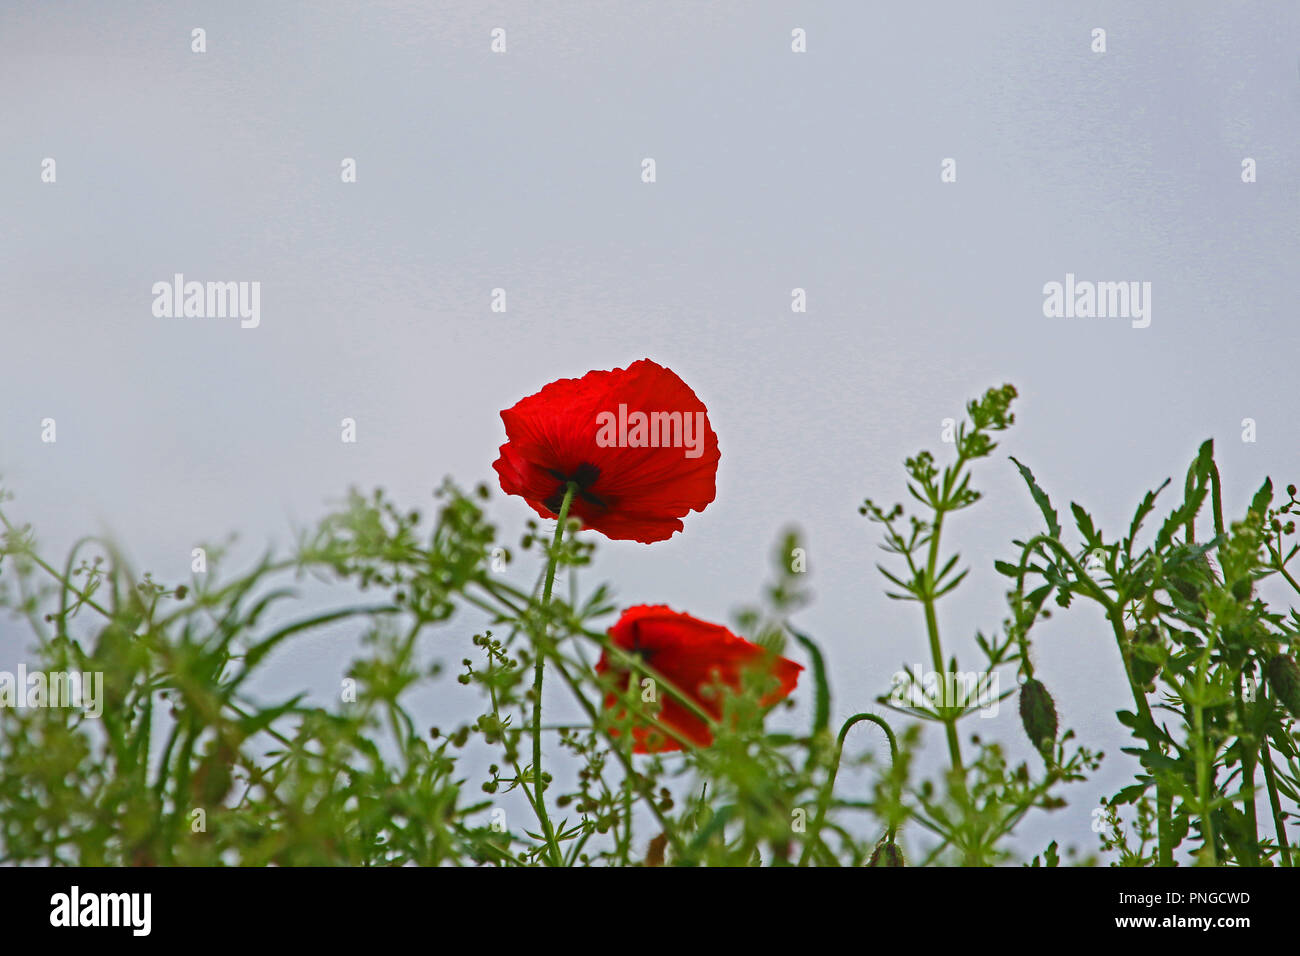 Poppy fields flanders stock photos poppy fields flanders stock poppy flower or papaver rhoeas with light behind in italy remembering 1918 the flanders fields poem mightylinksfo